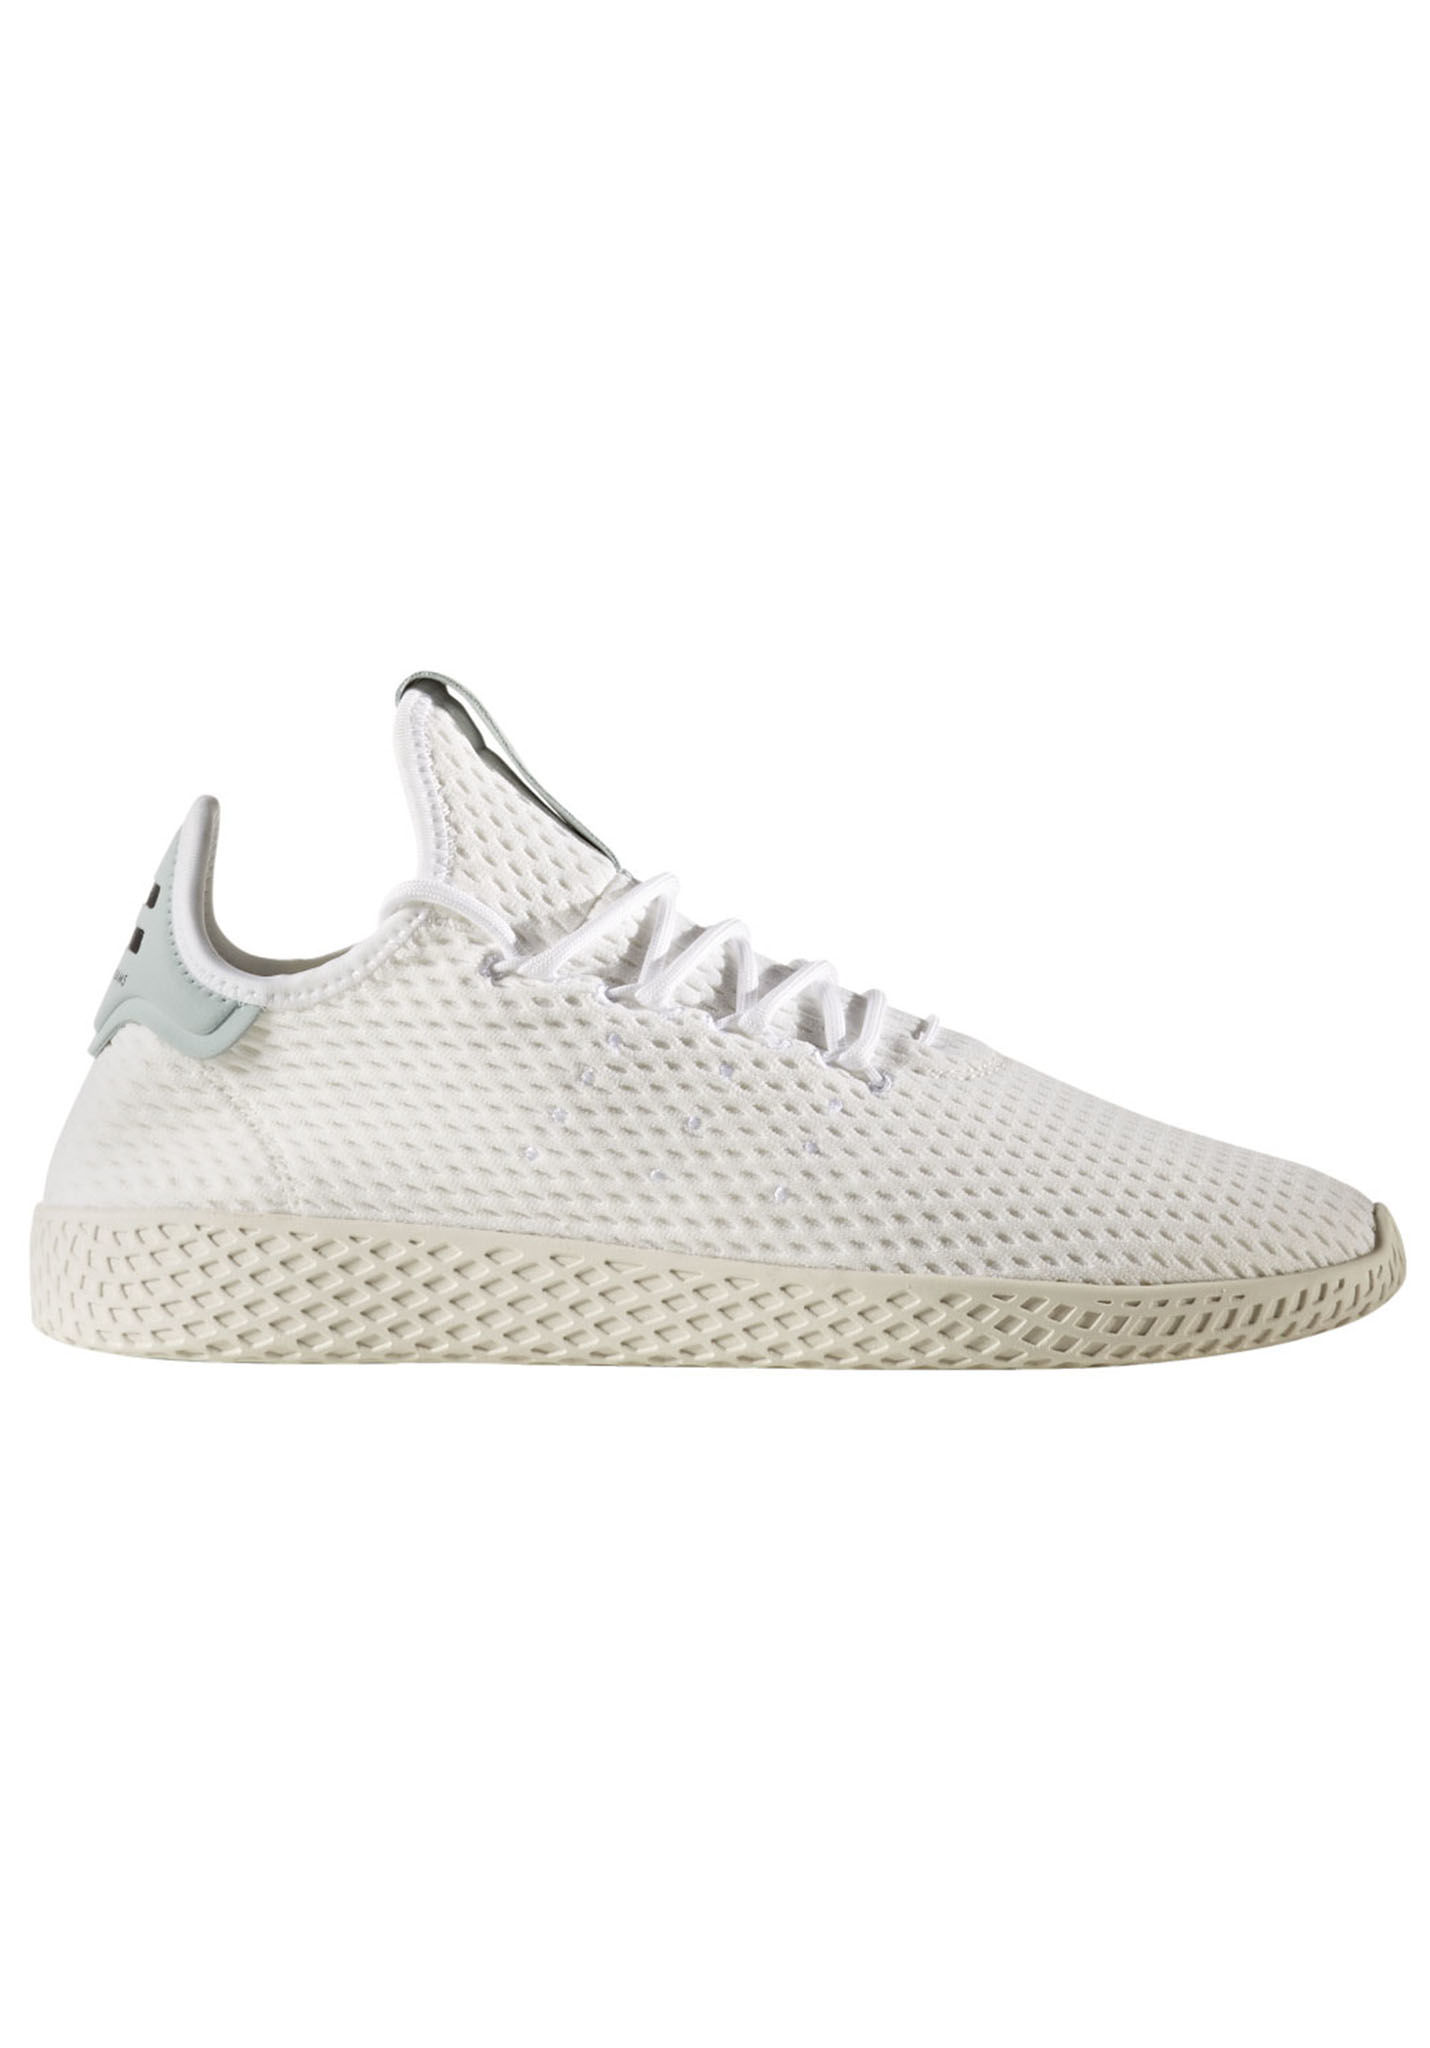 740de72c39f3ce adidas Originals Pharrell Williams Tennis HU - Sneaker - Weiß - Planet  Sports